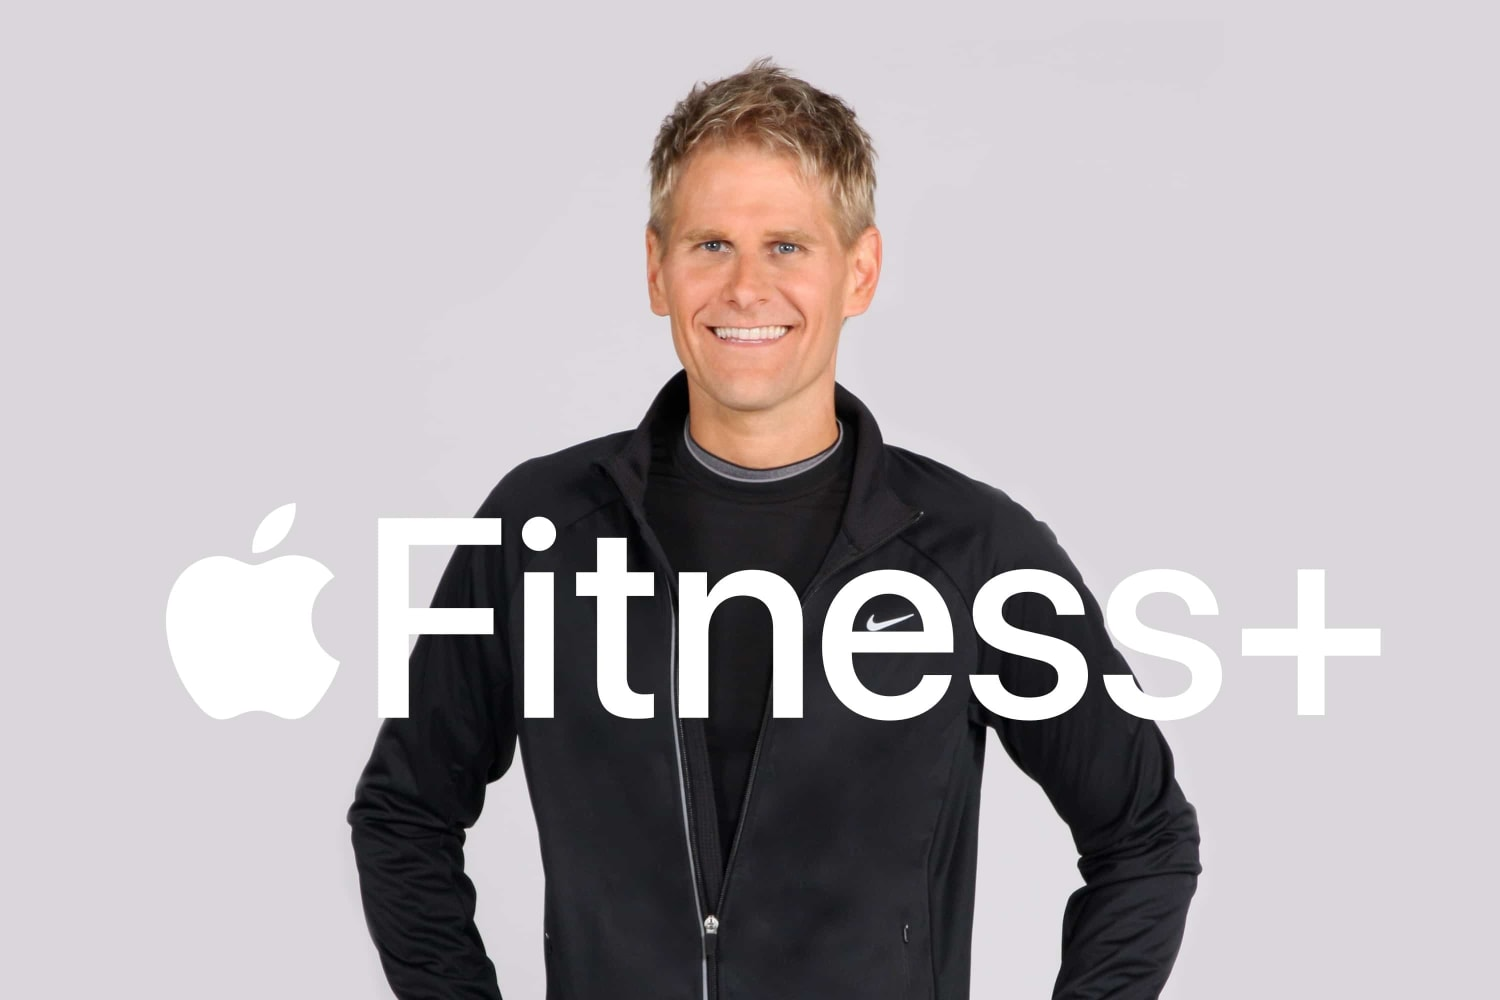 jay-blahnik-promotes-apple-fitness-as-launch-approaches-20201211-1